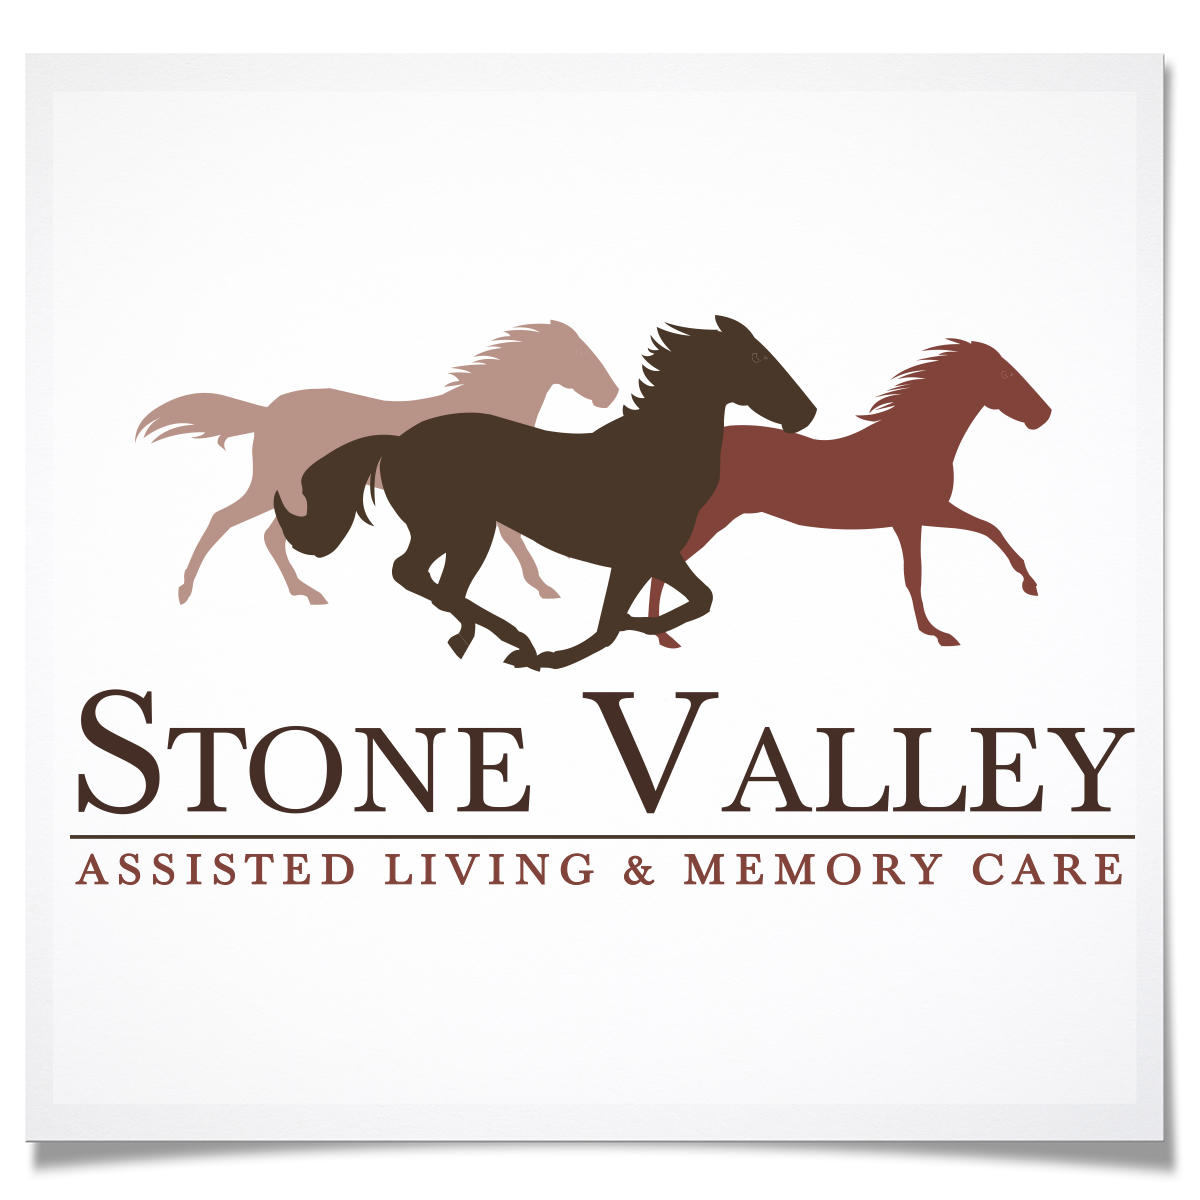 Stone Valley Assisted Living & Memory Care